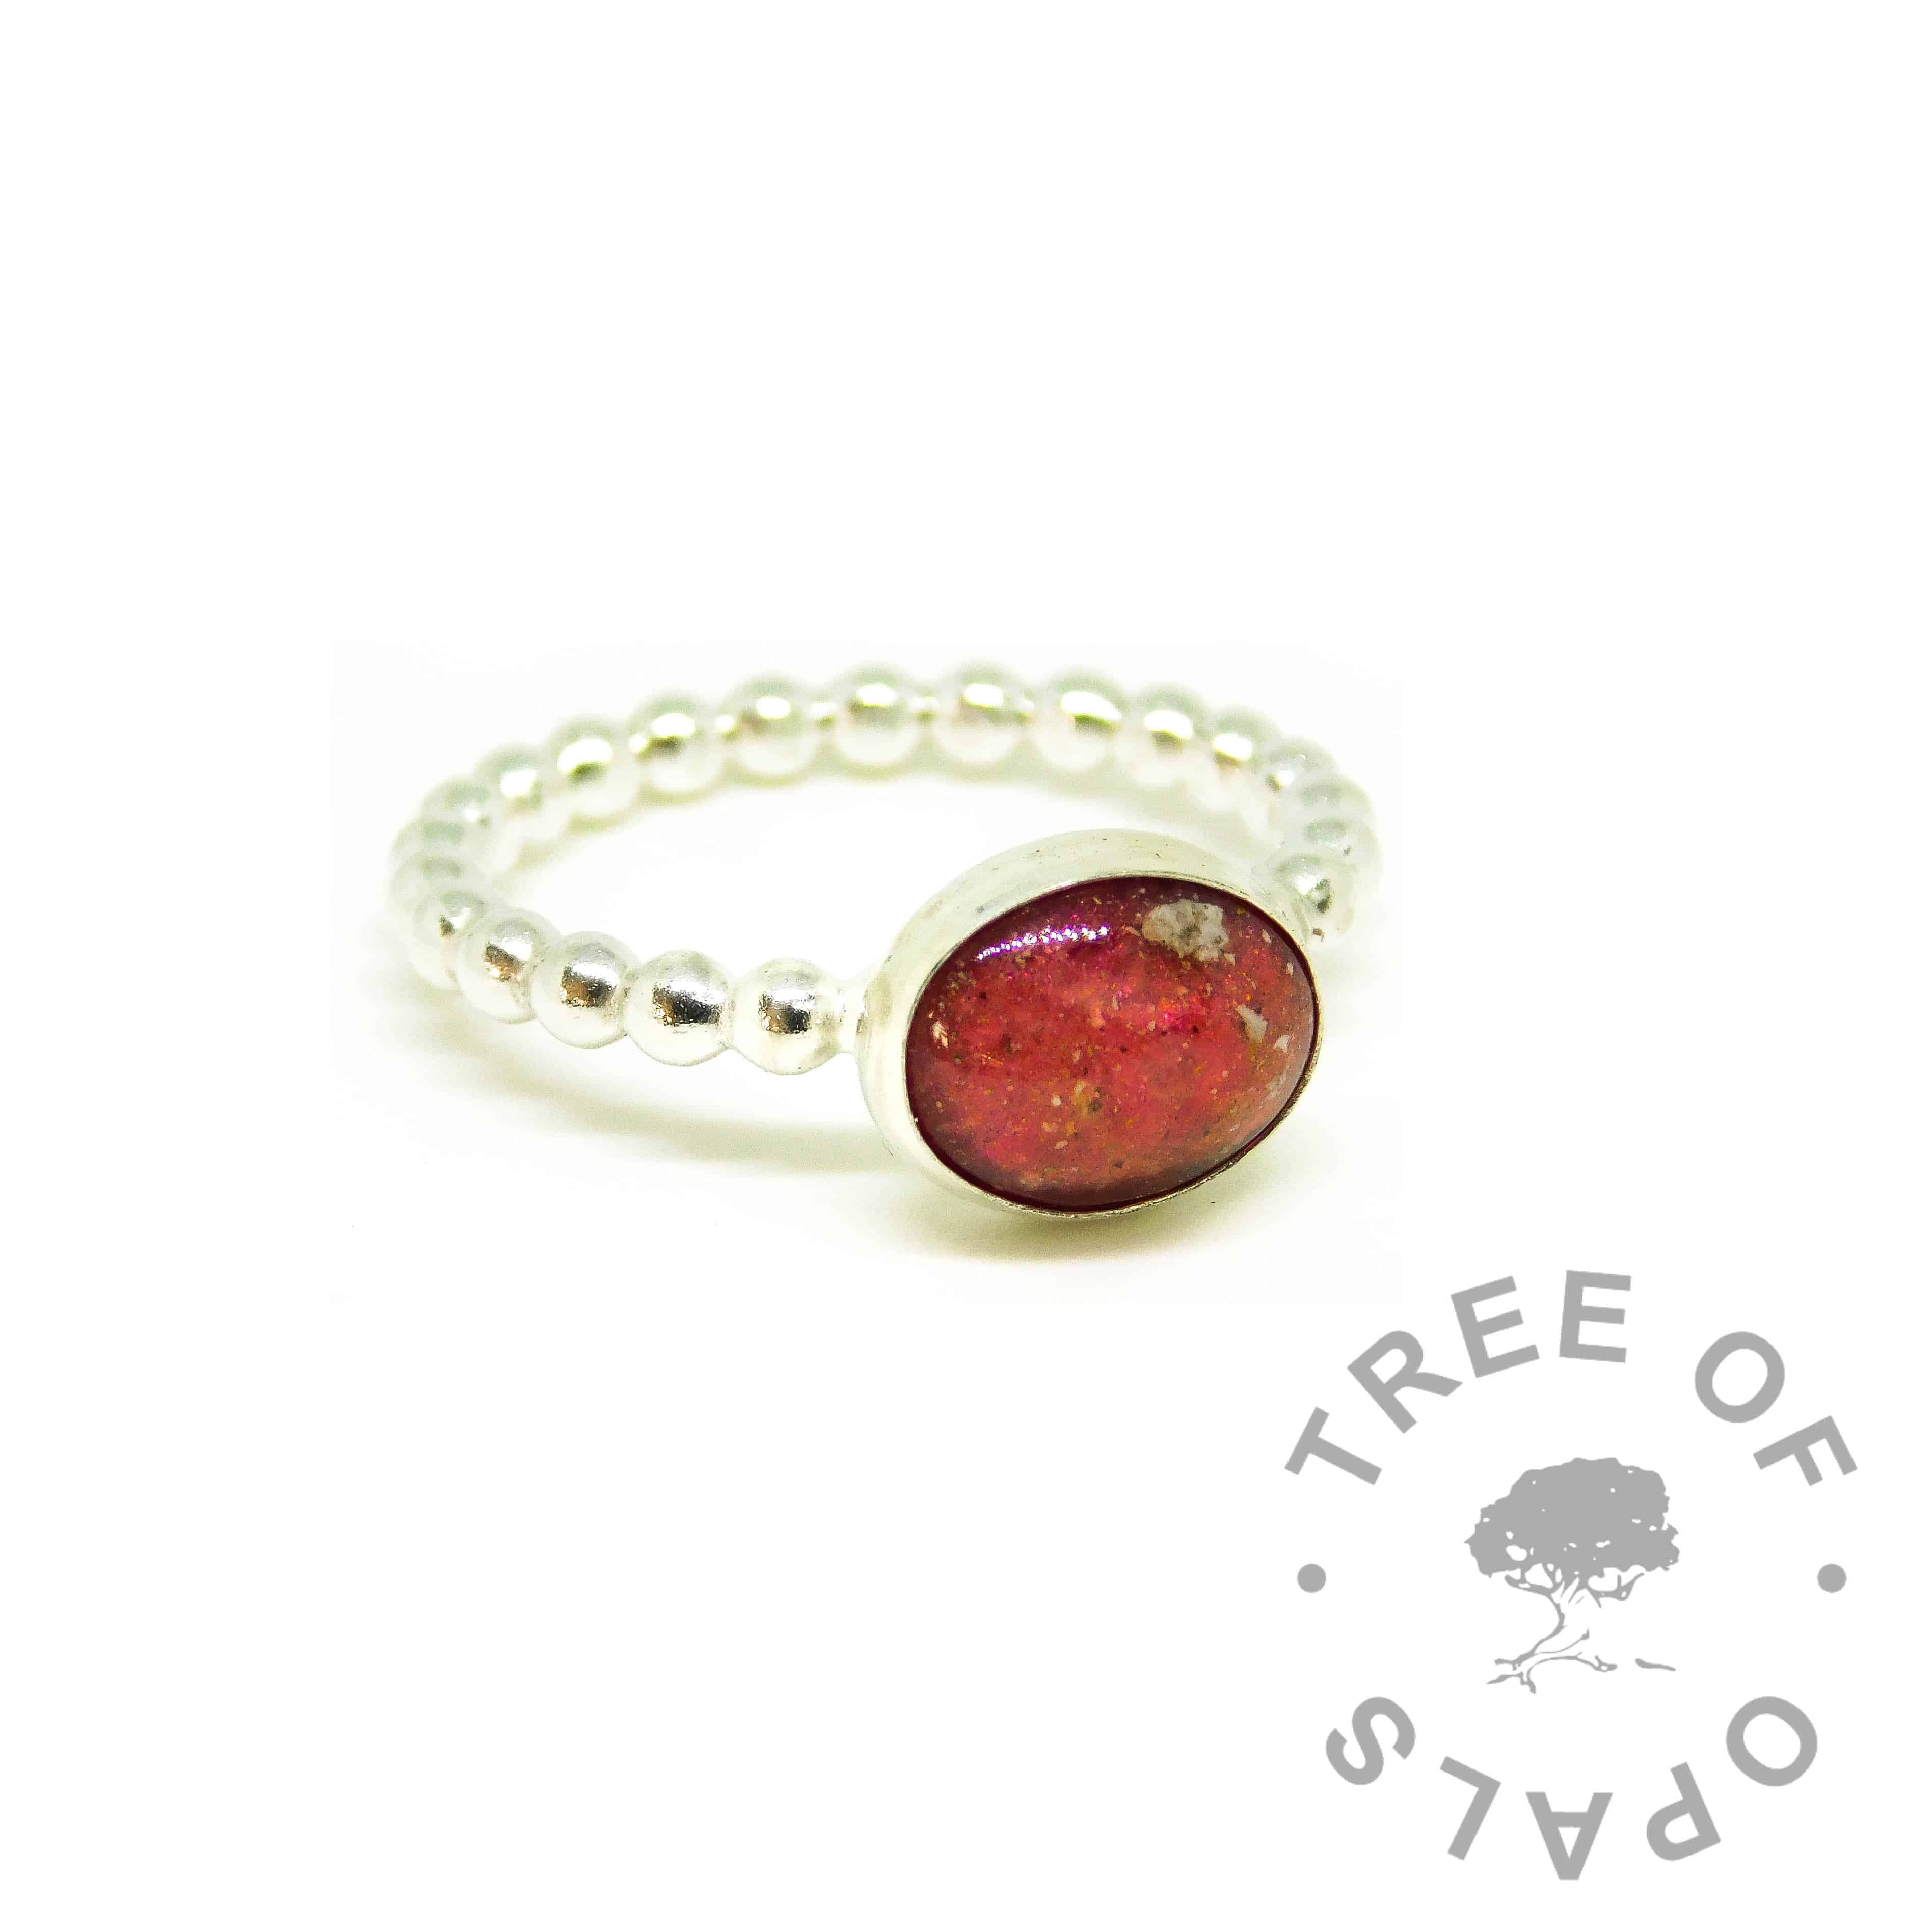 red ashes ring, dragon's blood red resin sparkle mix, bubble wire Argentium silver band